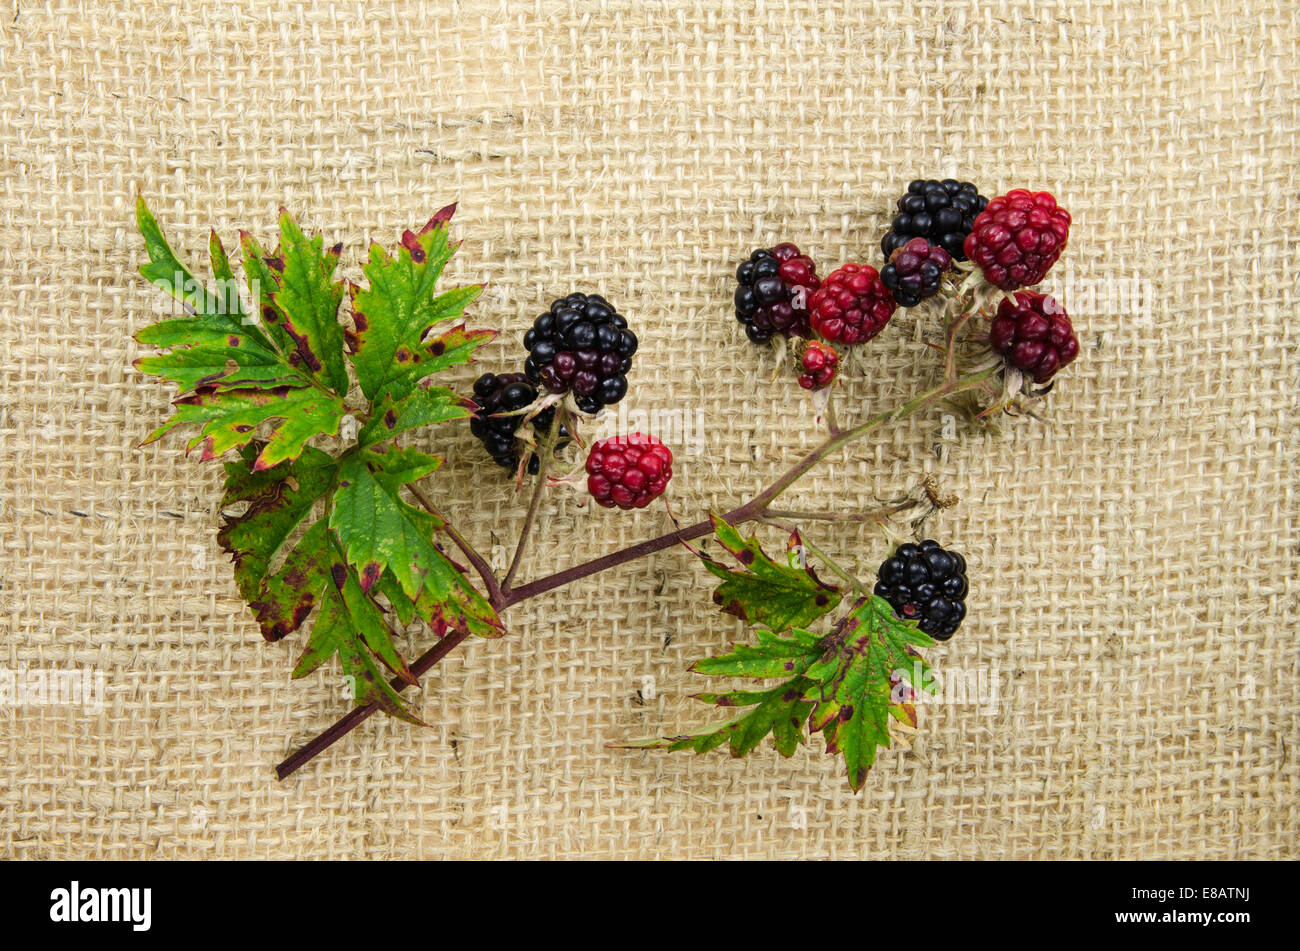 Red and black blackberries on a twig at burlap surface - Stock Image